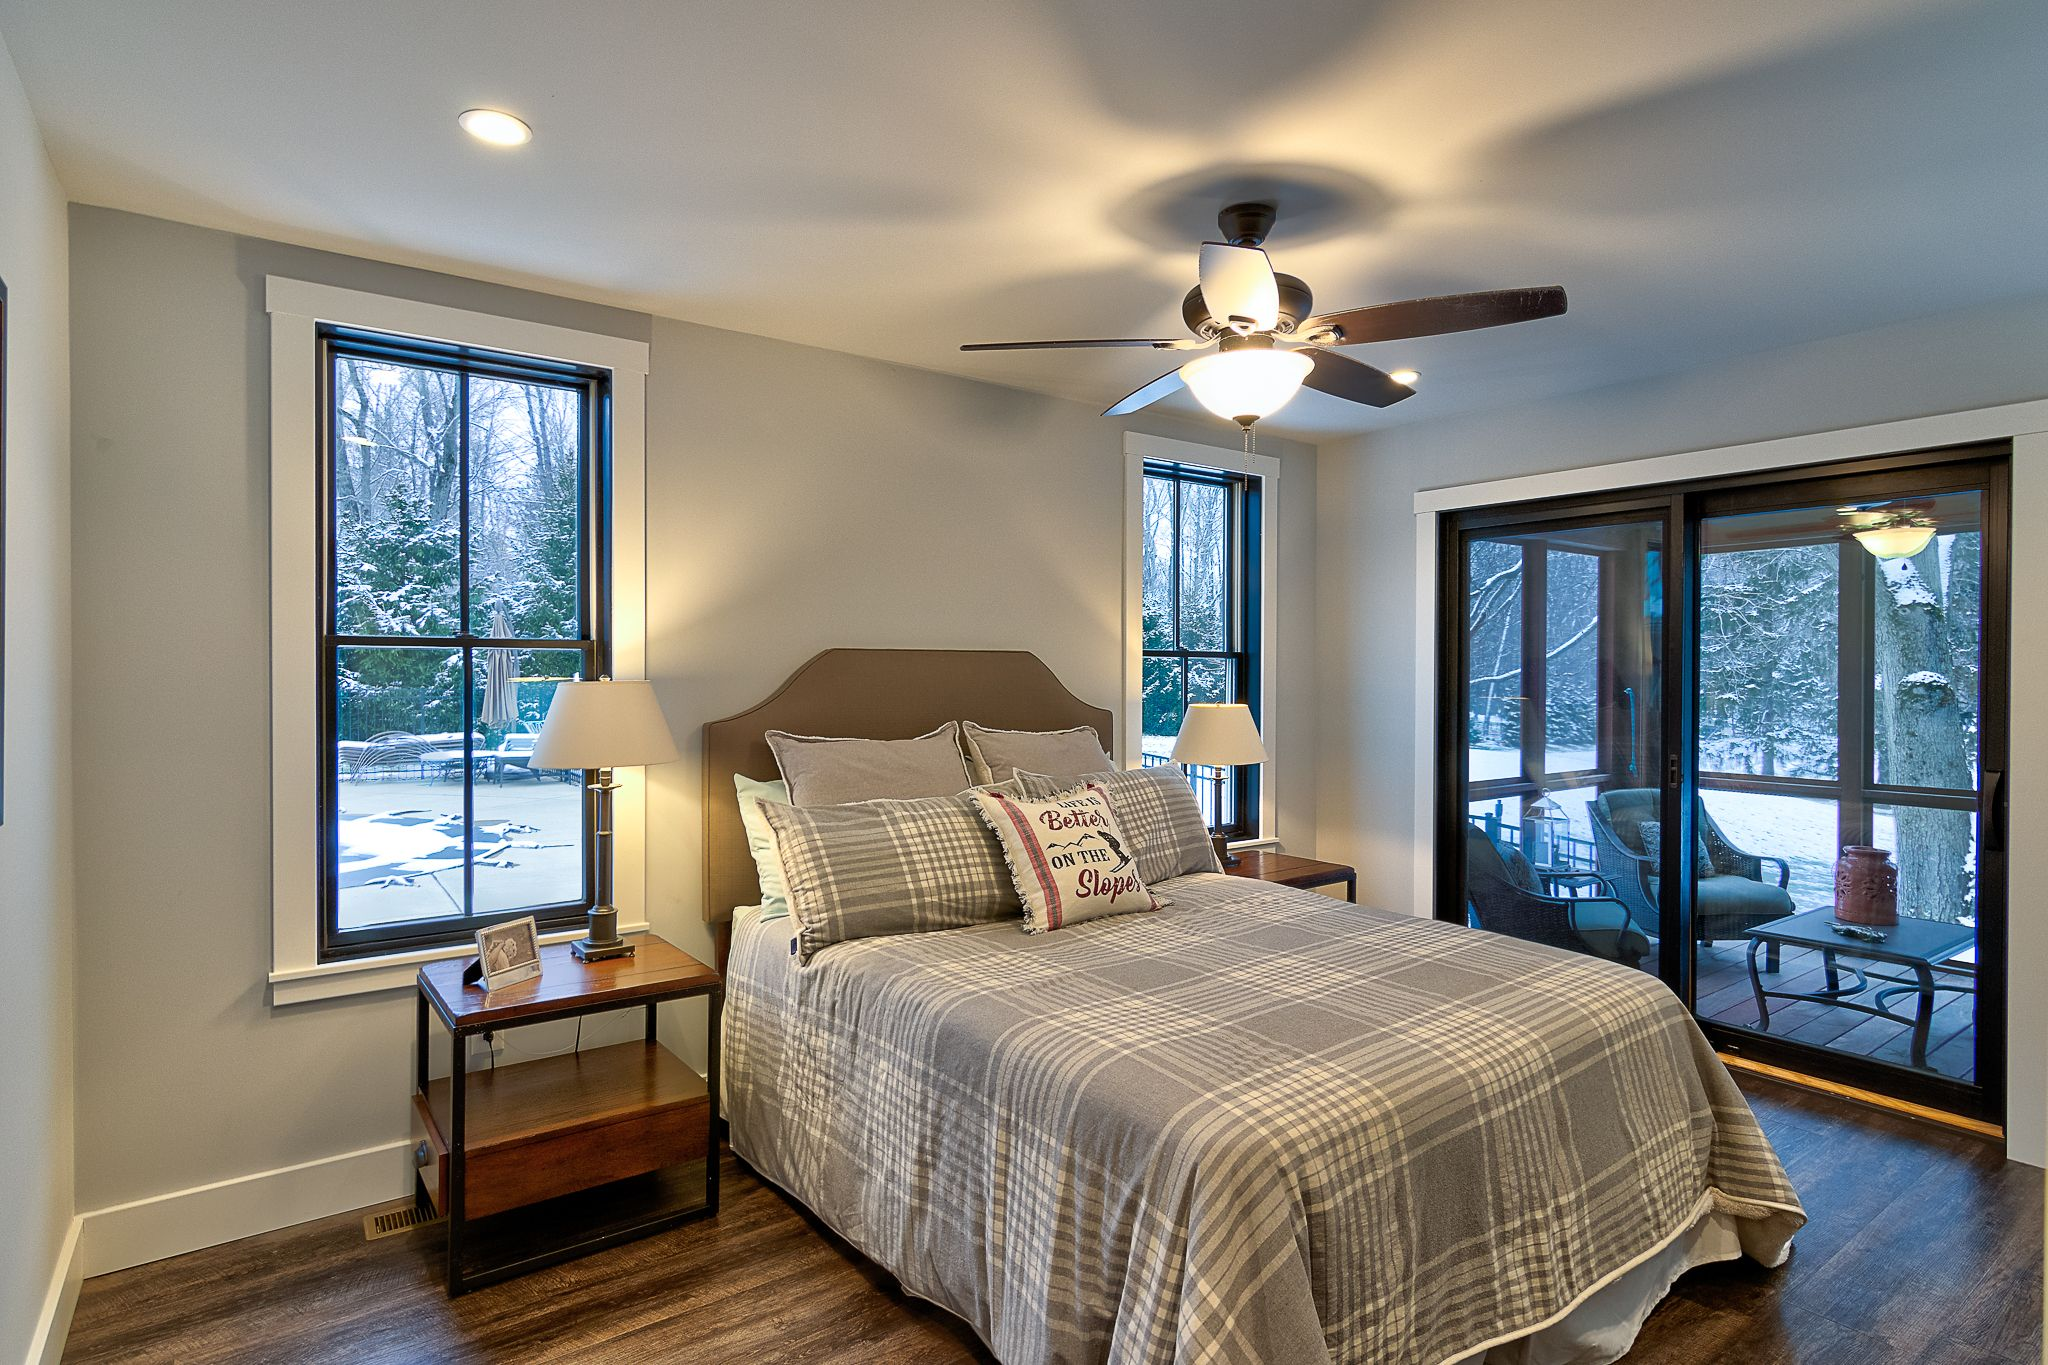 The master suite includes a Brazilian hardwood screened